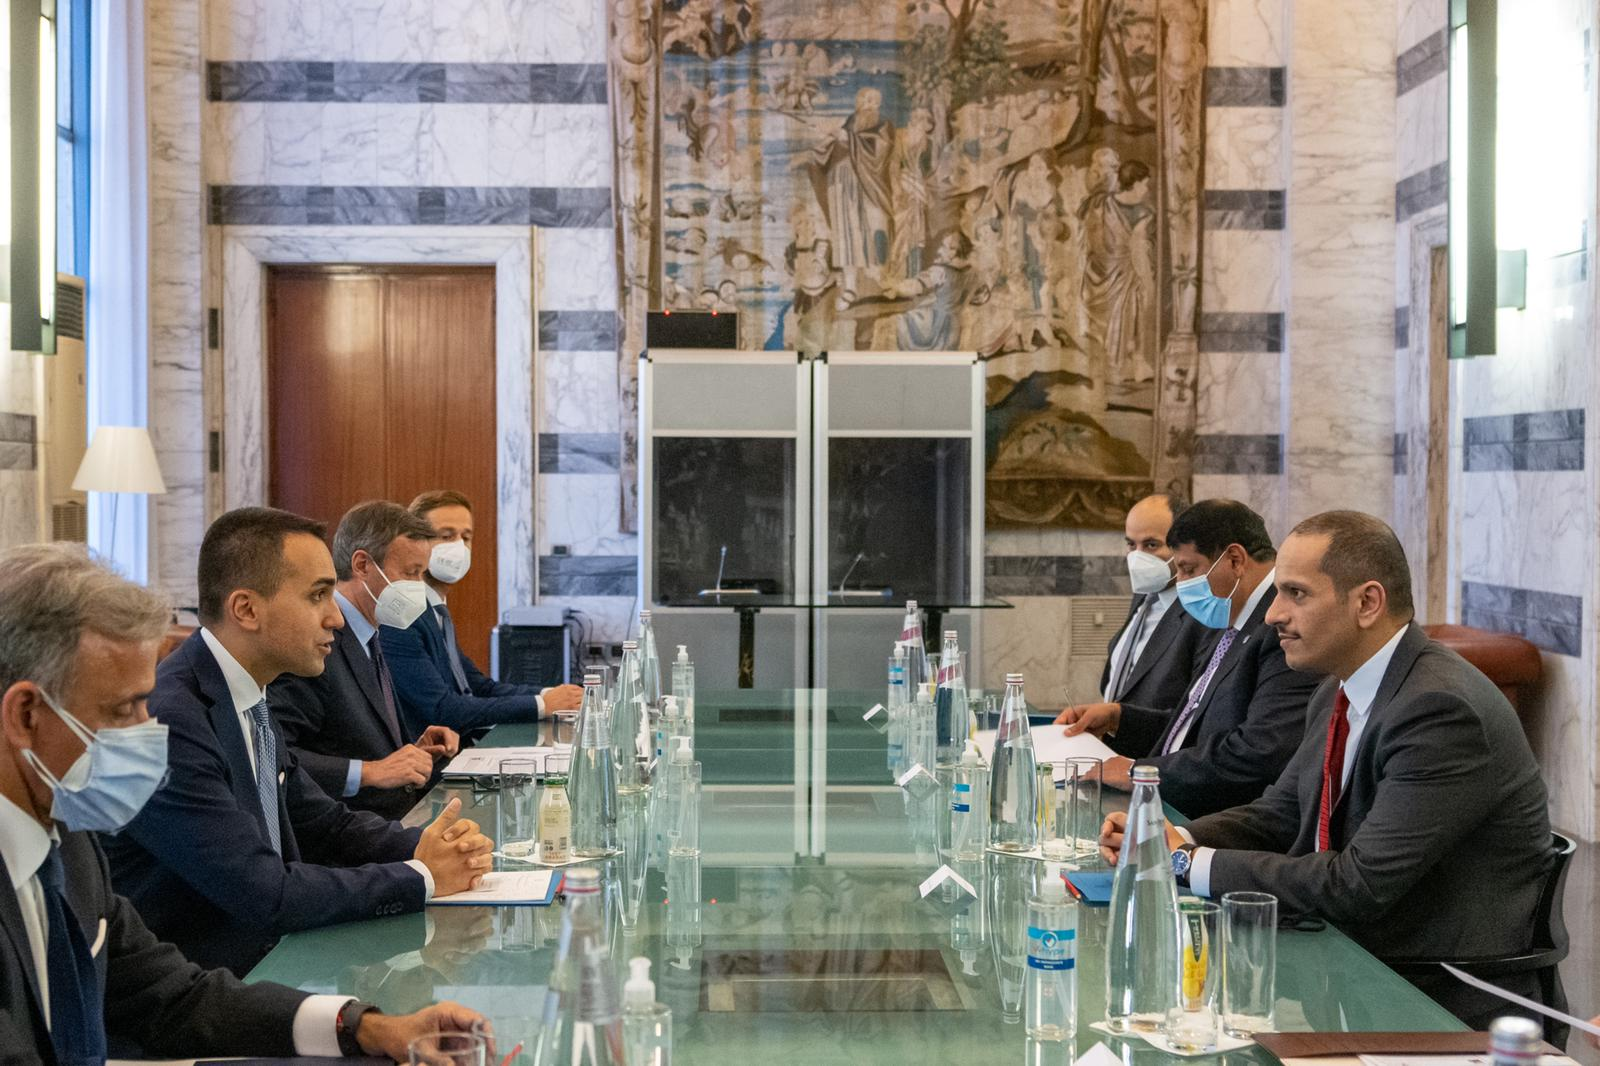 Deputy Prime Minister and Minister of Foreign Affairs Meets Italian Minister of Foreign Affairs